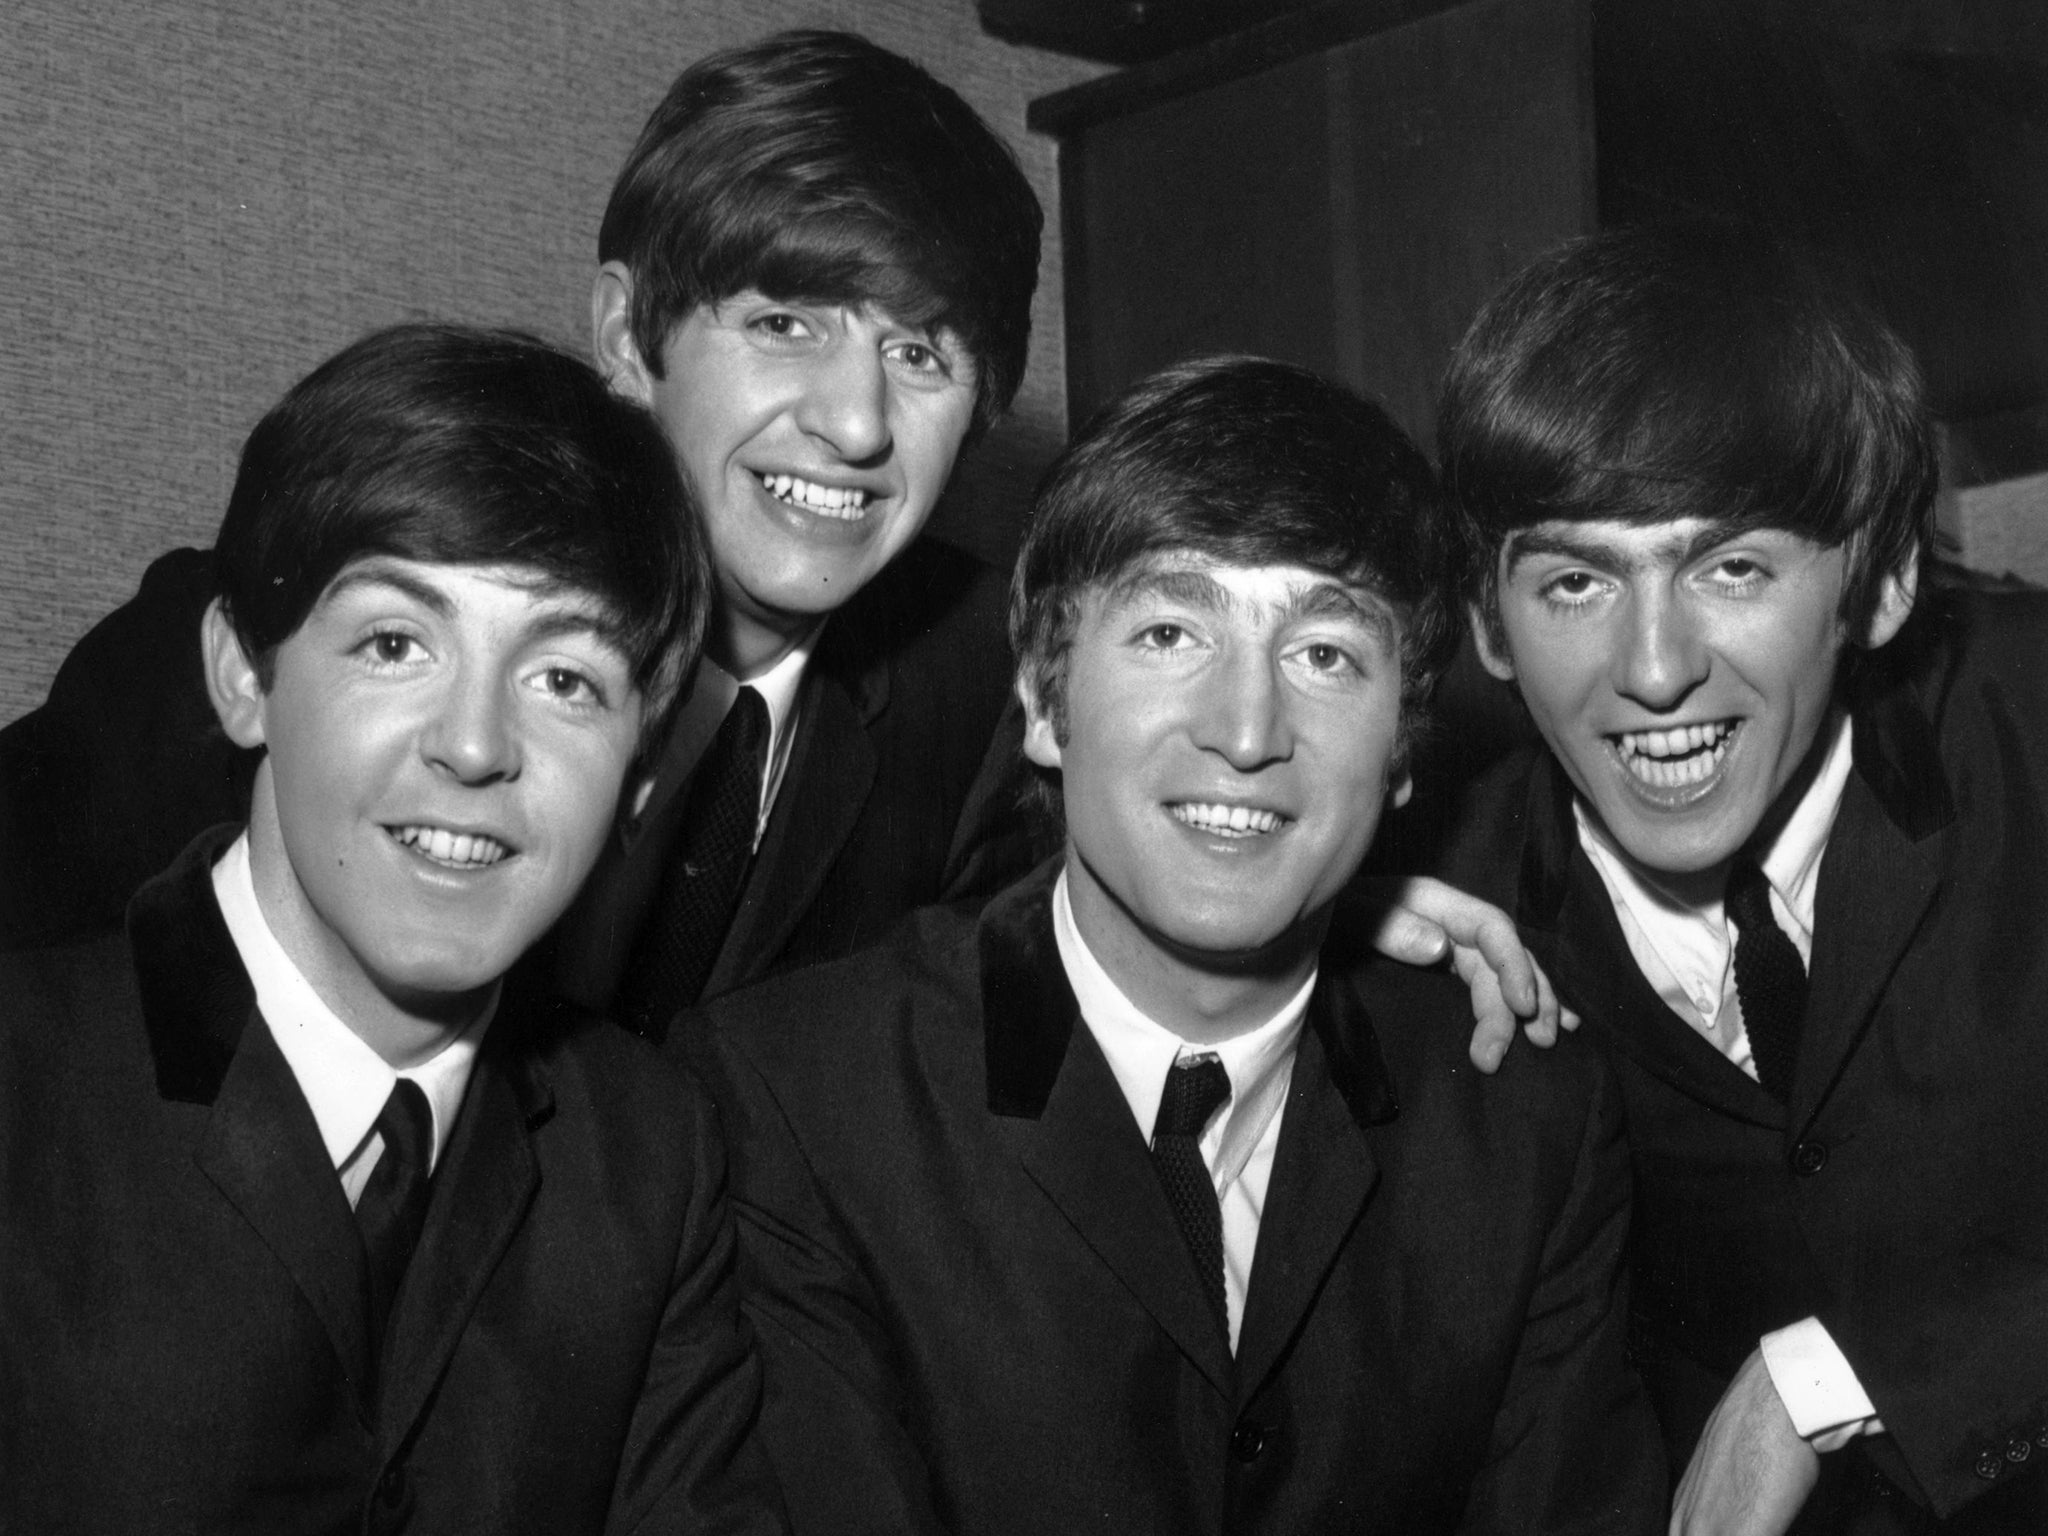 The Beatles' albums ranked in order of greatness, 50 years after their final studio recording session